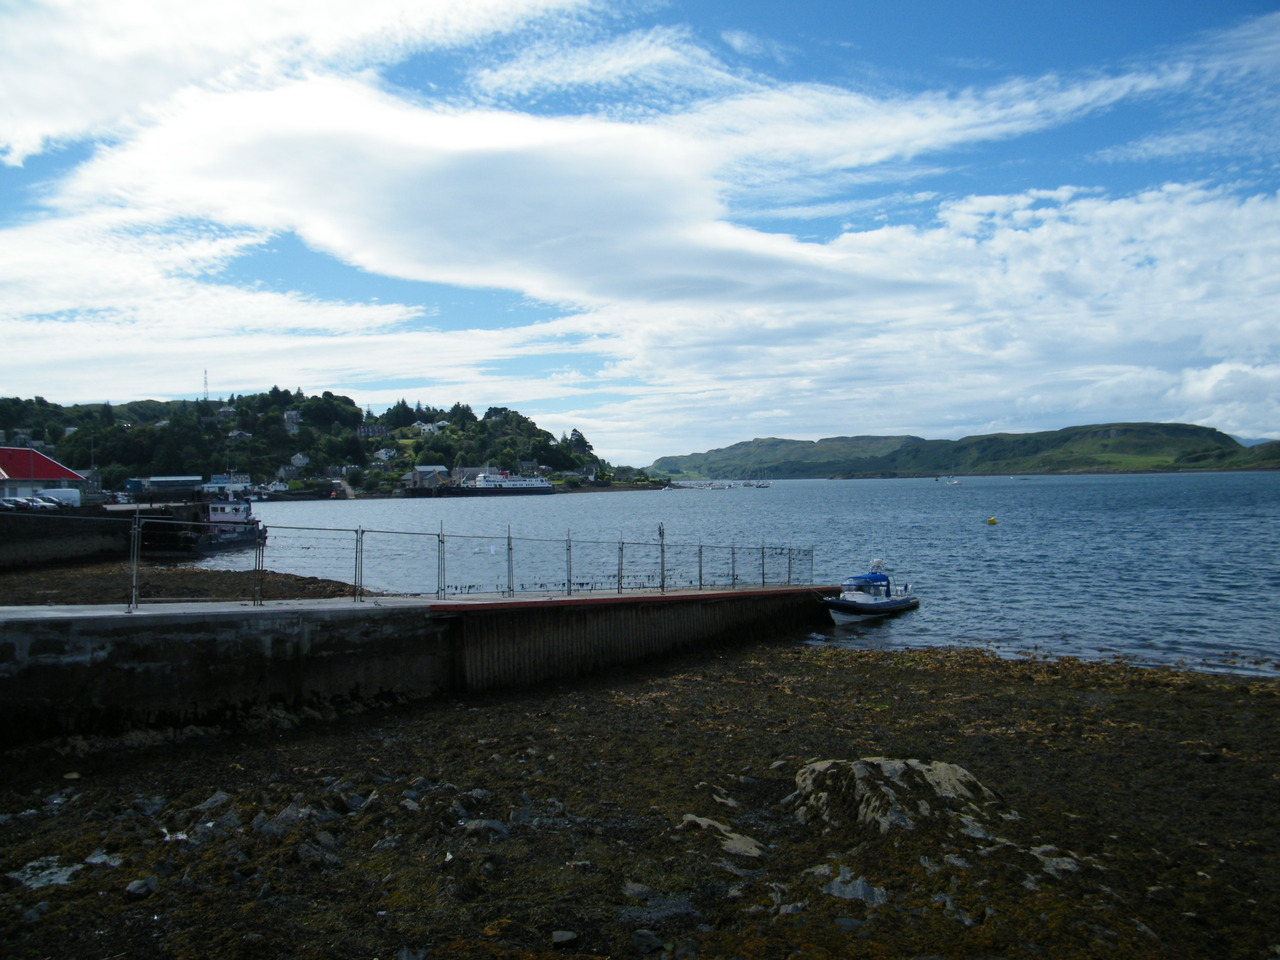 Very low tide at the Oban Times Slip